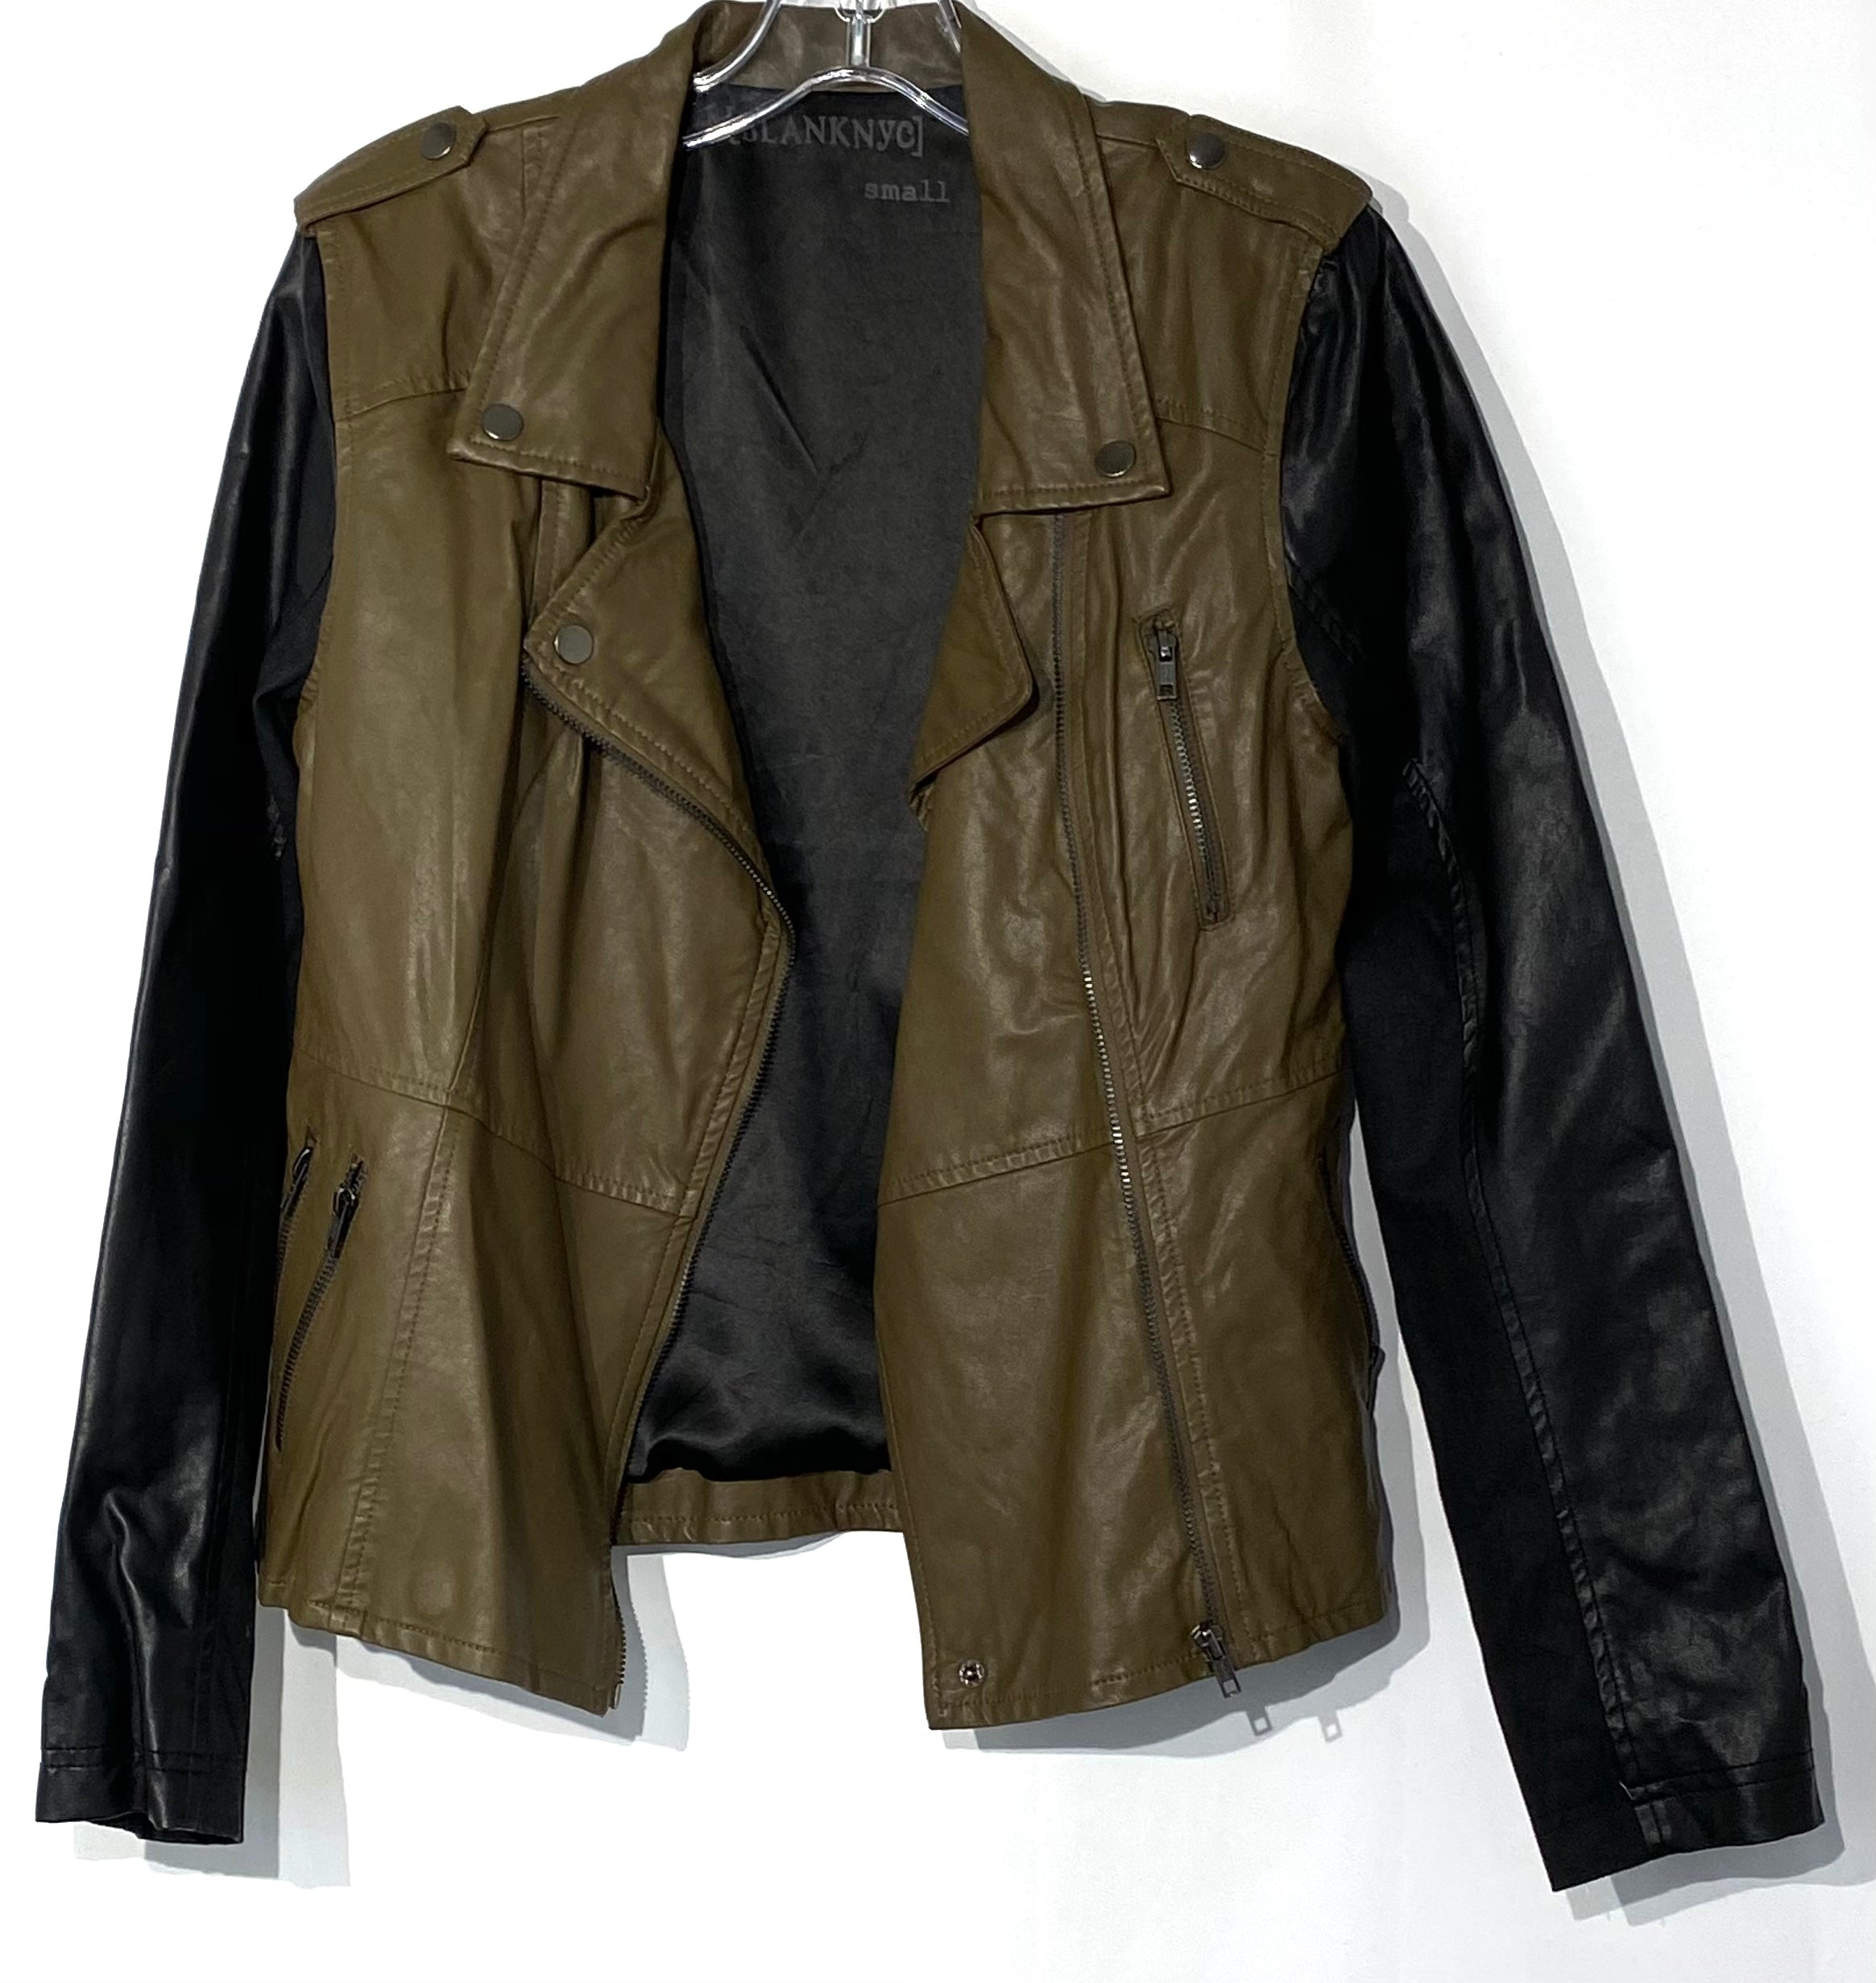 Primary Photo - BRAND: BLANKNYC <BR>STYLE: JACKET OUTDOOR <BR>COLOR: OLIVE <BR>SIZE: S <BR>SKU: 262-26275-69890<BR>LEATHER LOOK